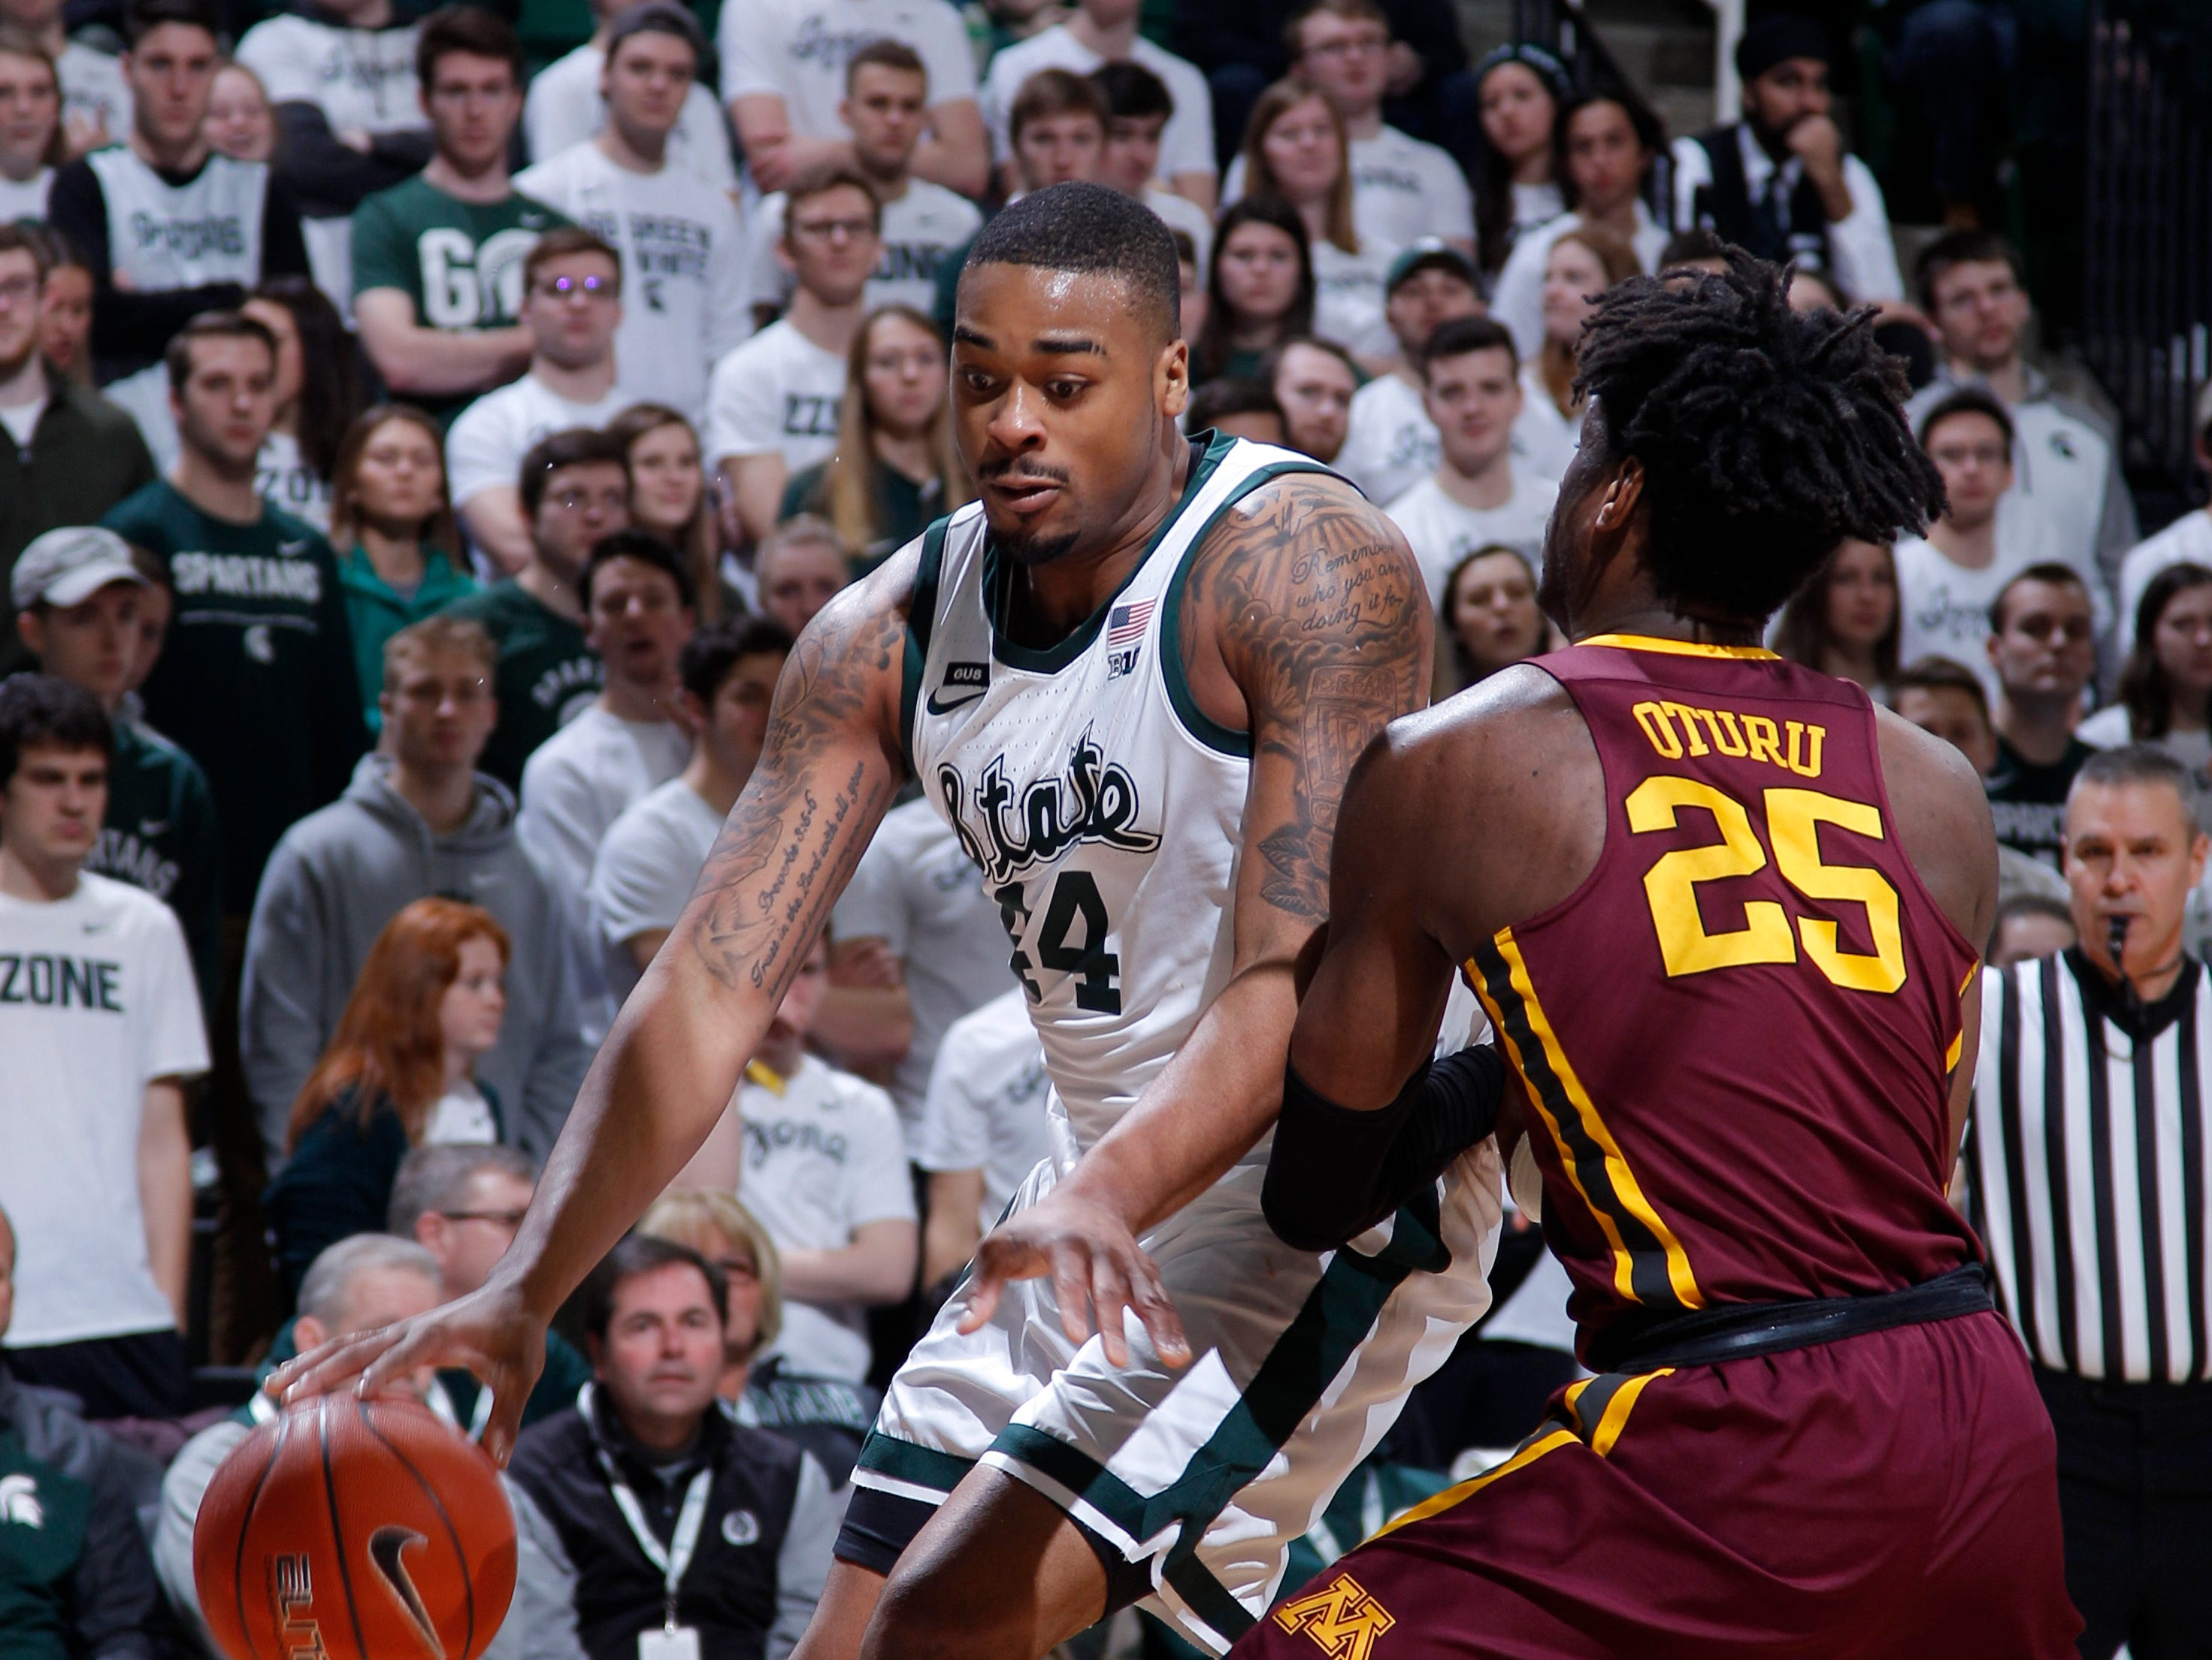 Michigan State's Nick Ward, left, drives against Minnesota's Daniel Oturu during the first half of an NCAA college basketball game, Saturday, Feb. 9, 2019, in East Lansing, Mich. Michigan State won 79-55. (AP Photo/Al Goldis)